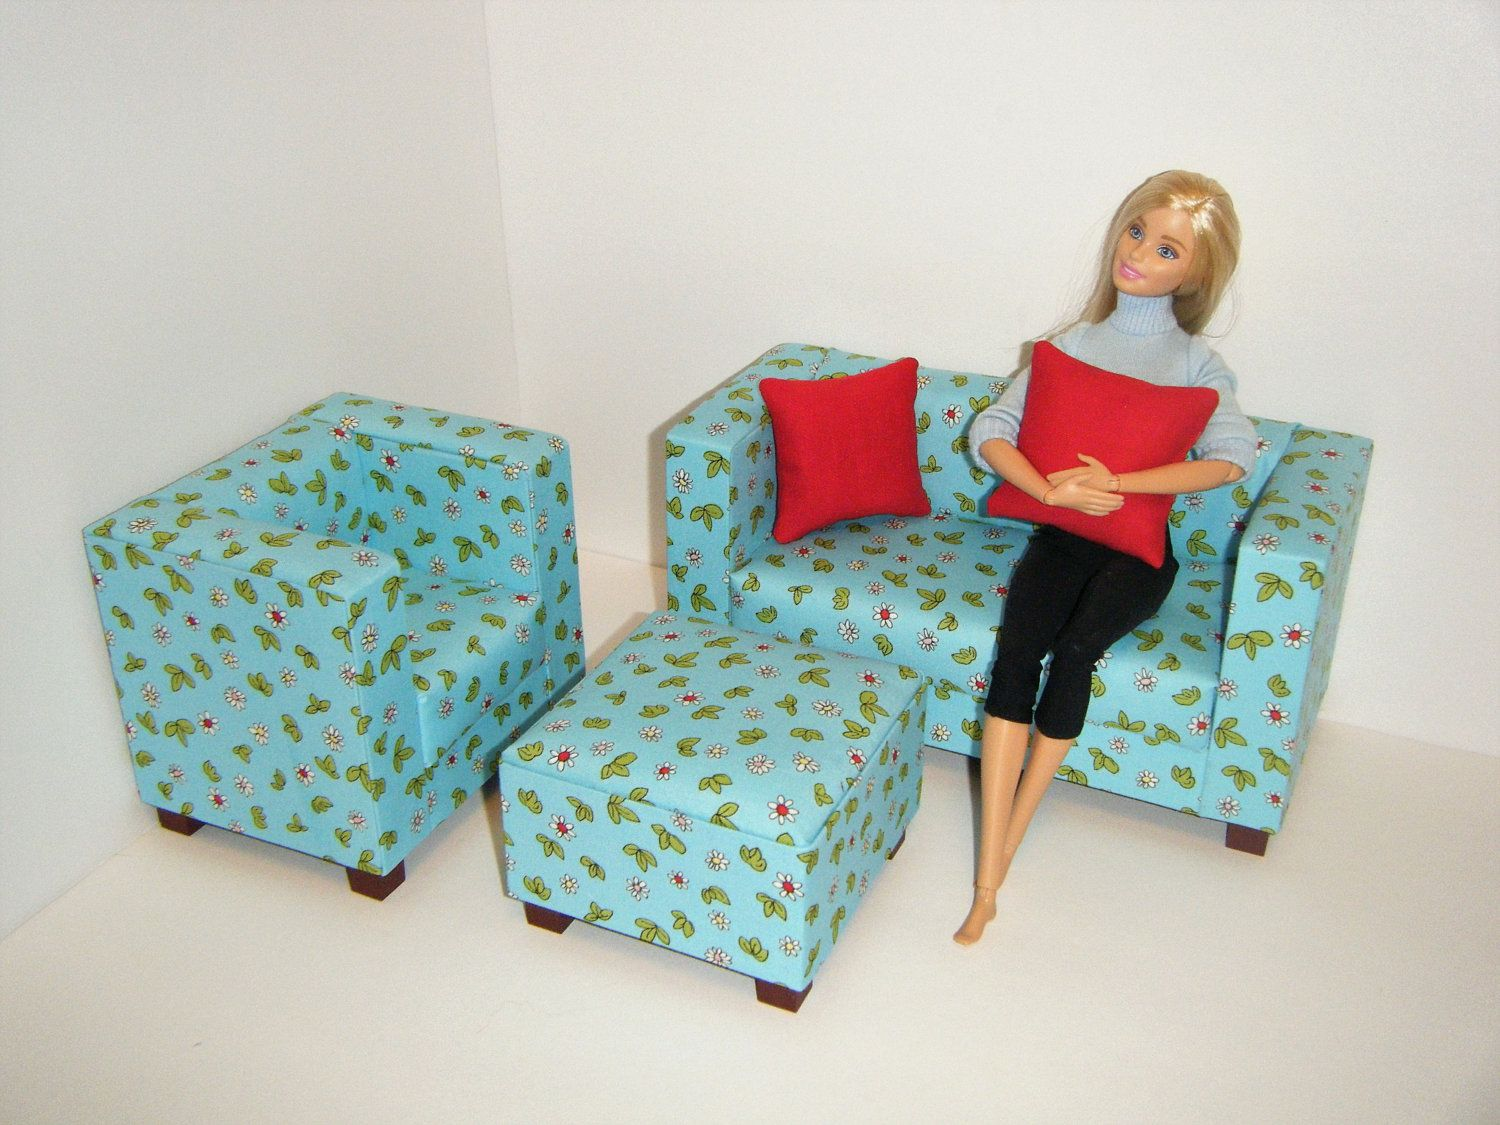 Remarkable Barbie Diorama Playscale Living Room Furniture Sofa Chair Short Links Chair Design For Home Short Linksinfo